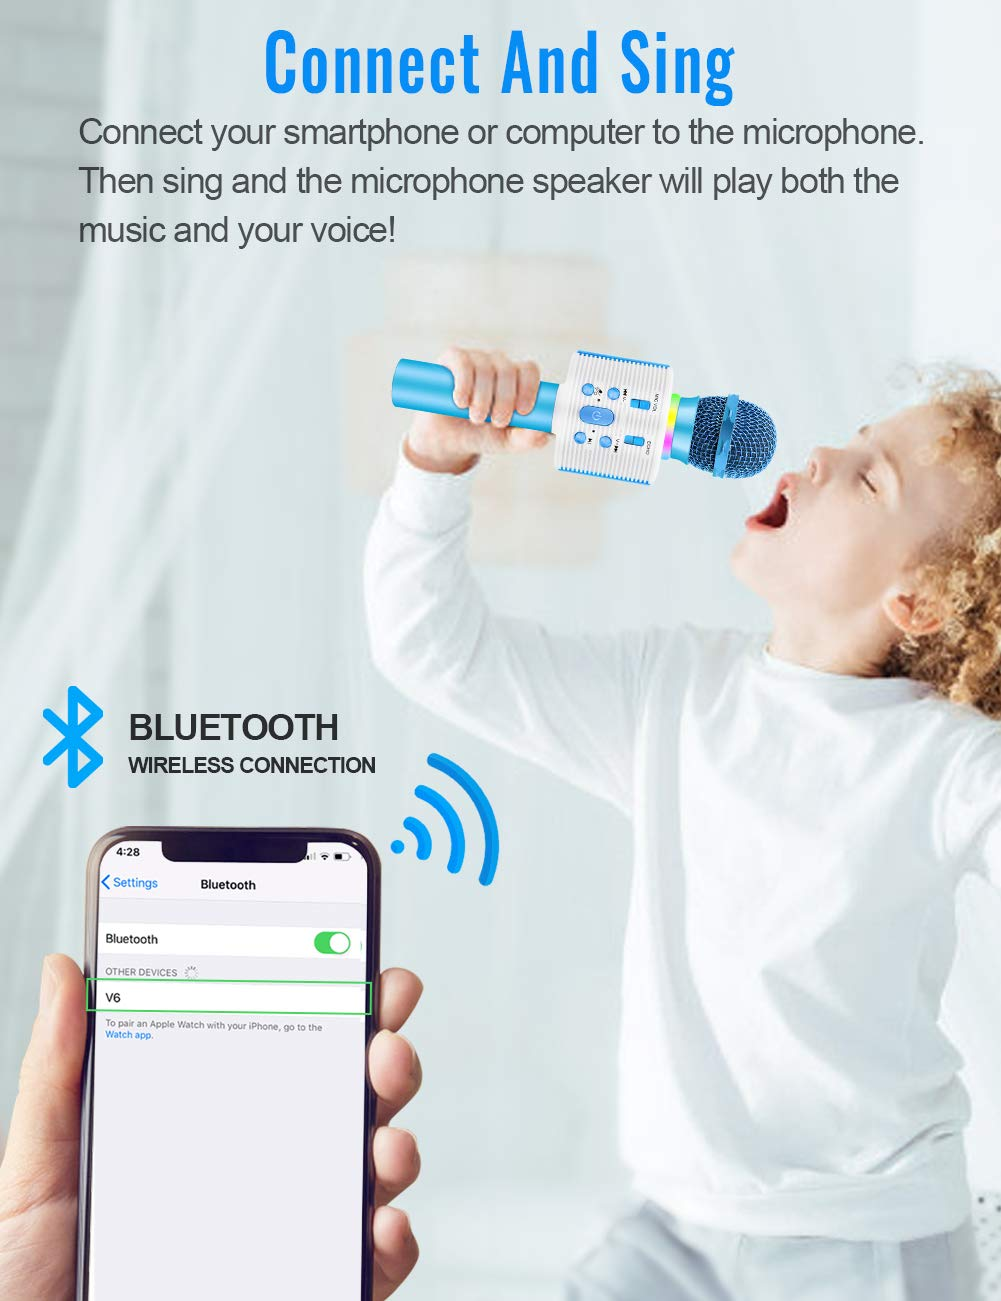 Wireless Karaoke Microphone with Speaker Pro, 3-in-1 Portable Handheld Karaoke Mic Home Party Birthday Gifts for Kids Speaker Machine for Android/ PC /phone(Blue) by weird tails (Image #2)